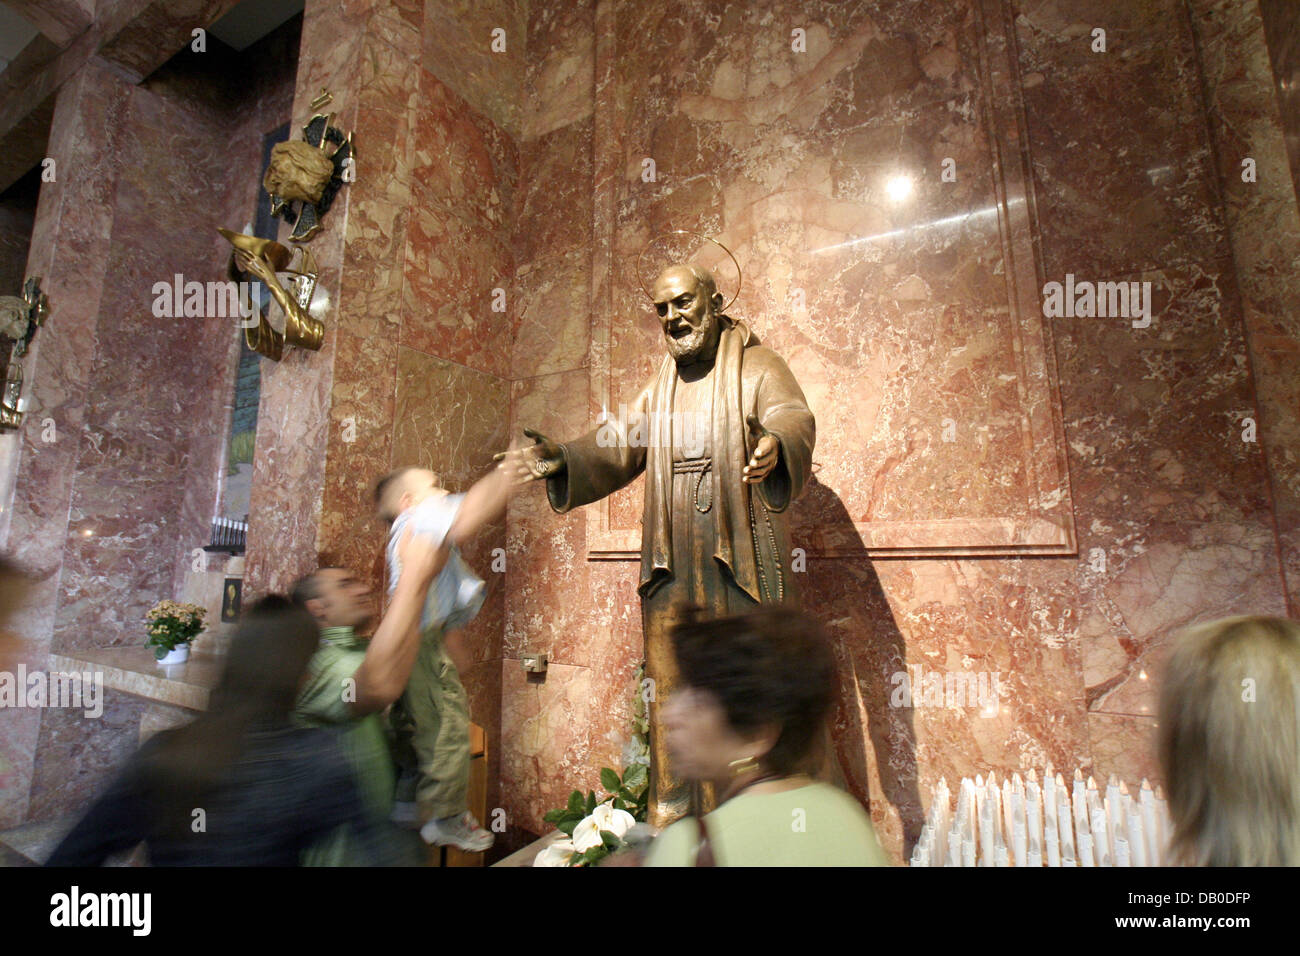 A sculpture of Padre Pio is pictured at the abbey of San Giovanni Rotondo, Italy, 12 May 2007.  Padre Pio, born - Stock Image